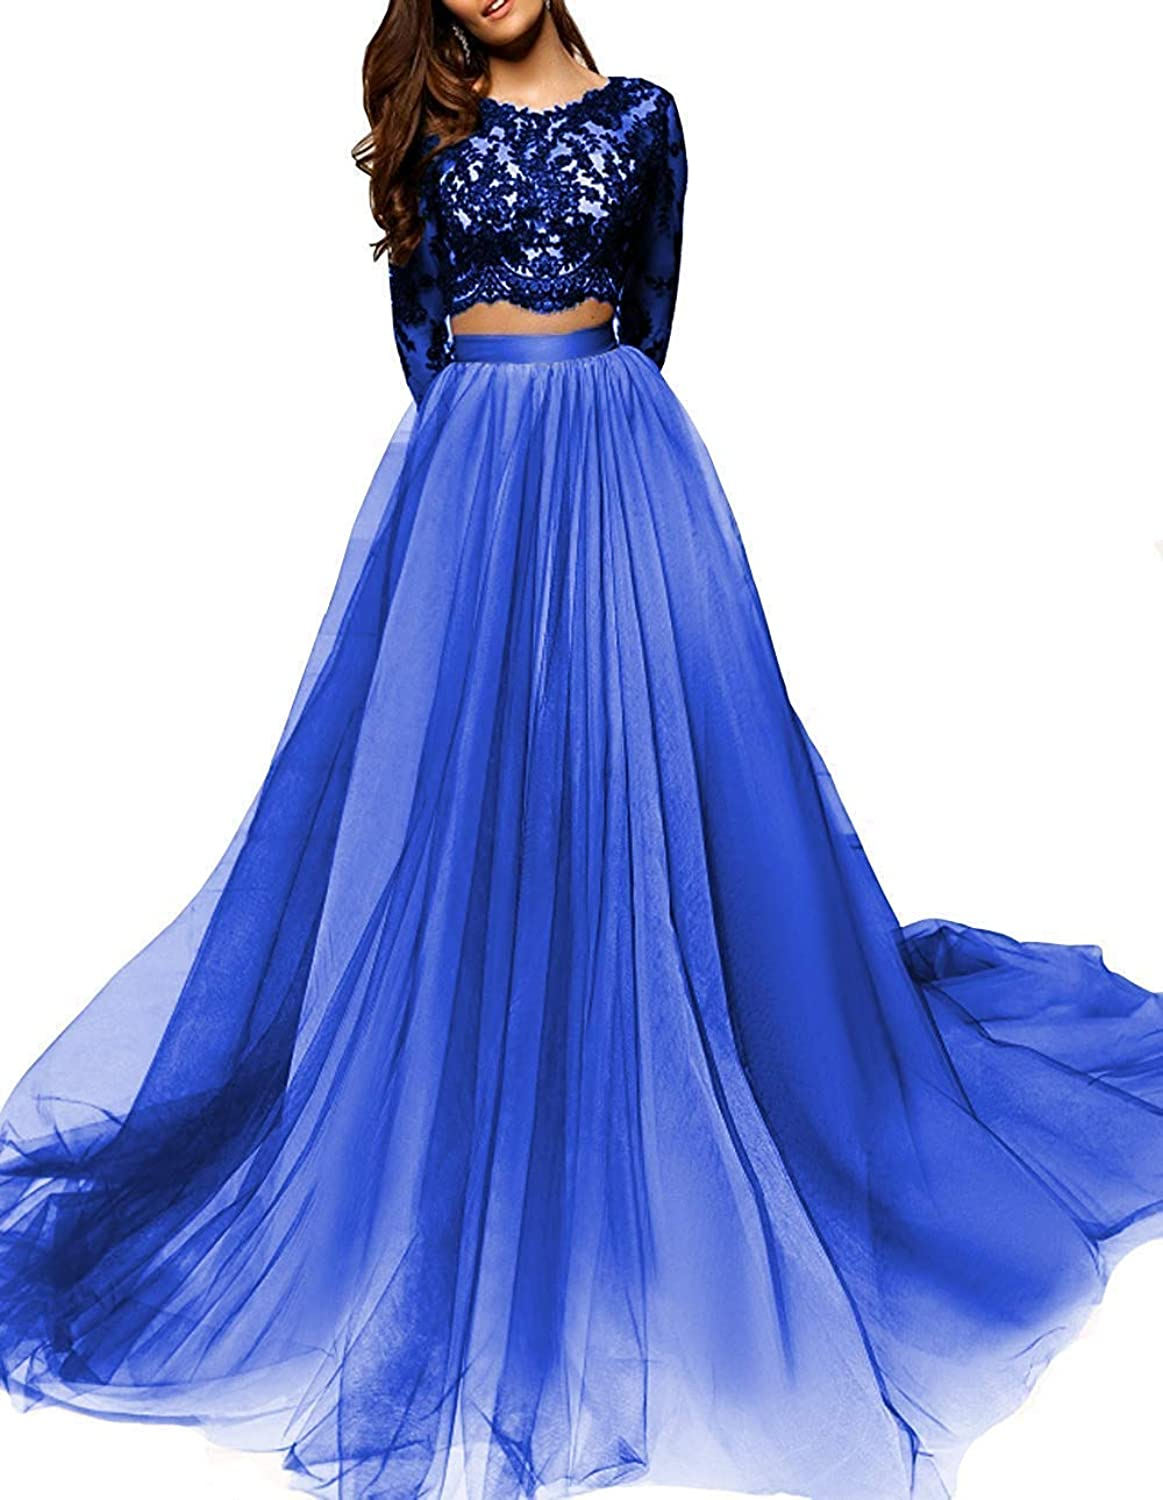 PearlBridal Two Piece Lace Long Sleeves Prom Dresses Appliques Long Evening Dresses for Women Formal